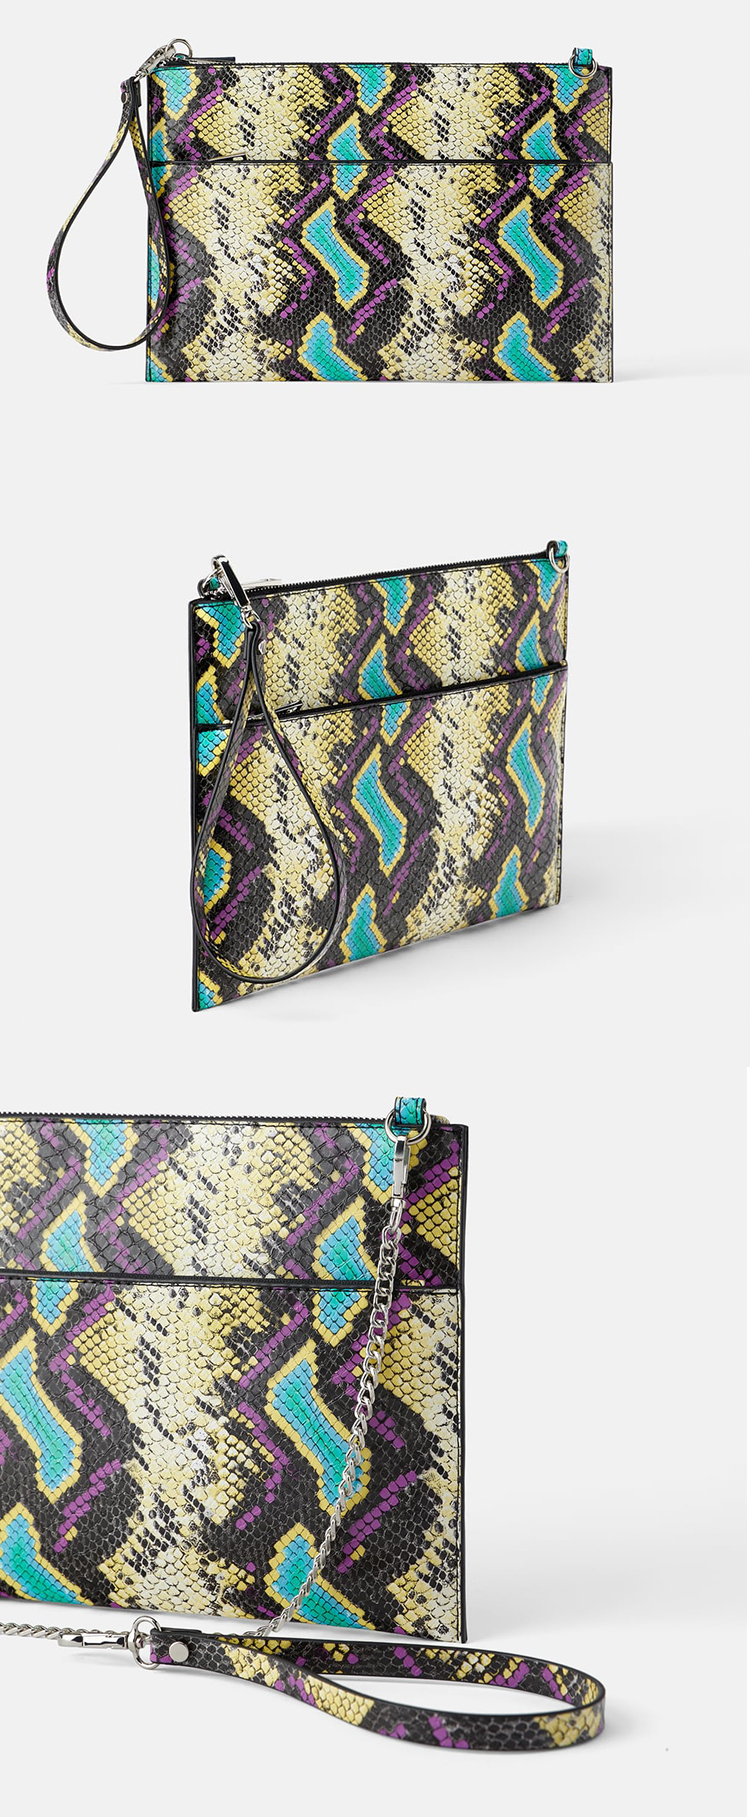 ladies-clutch-bag2_03